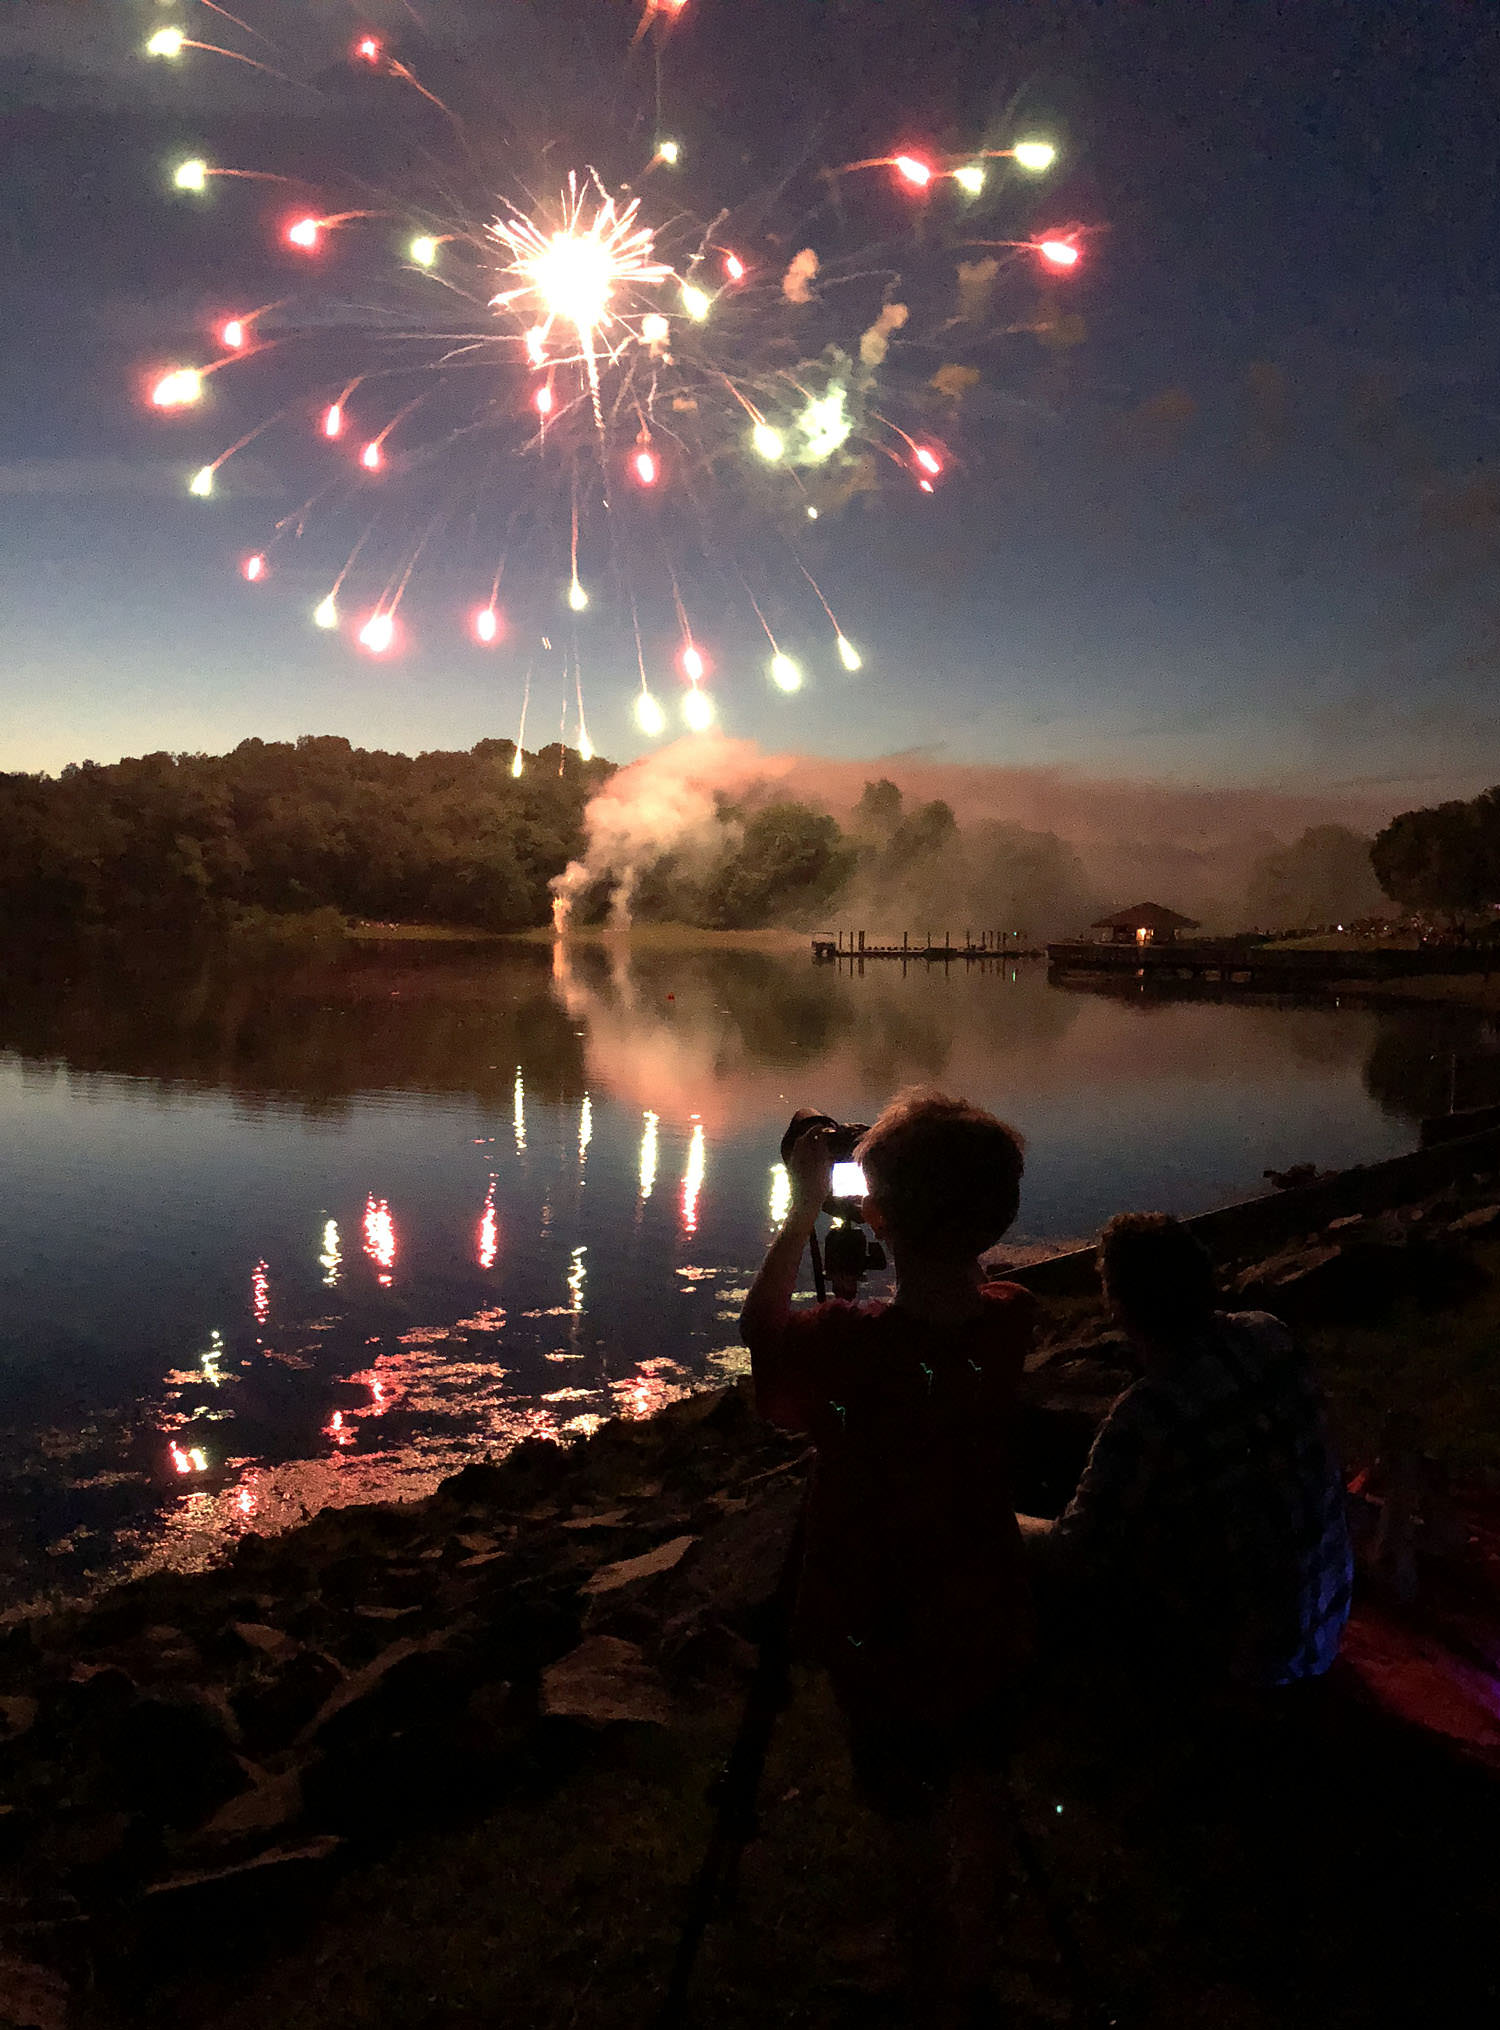 Child with tripod and fireworks